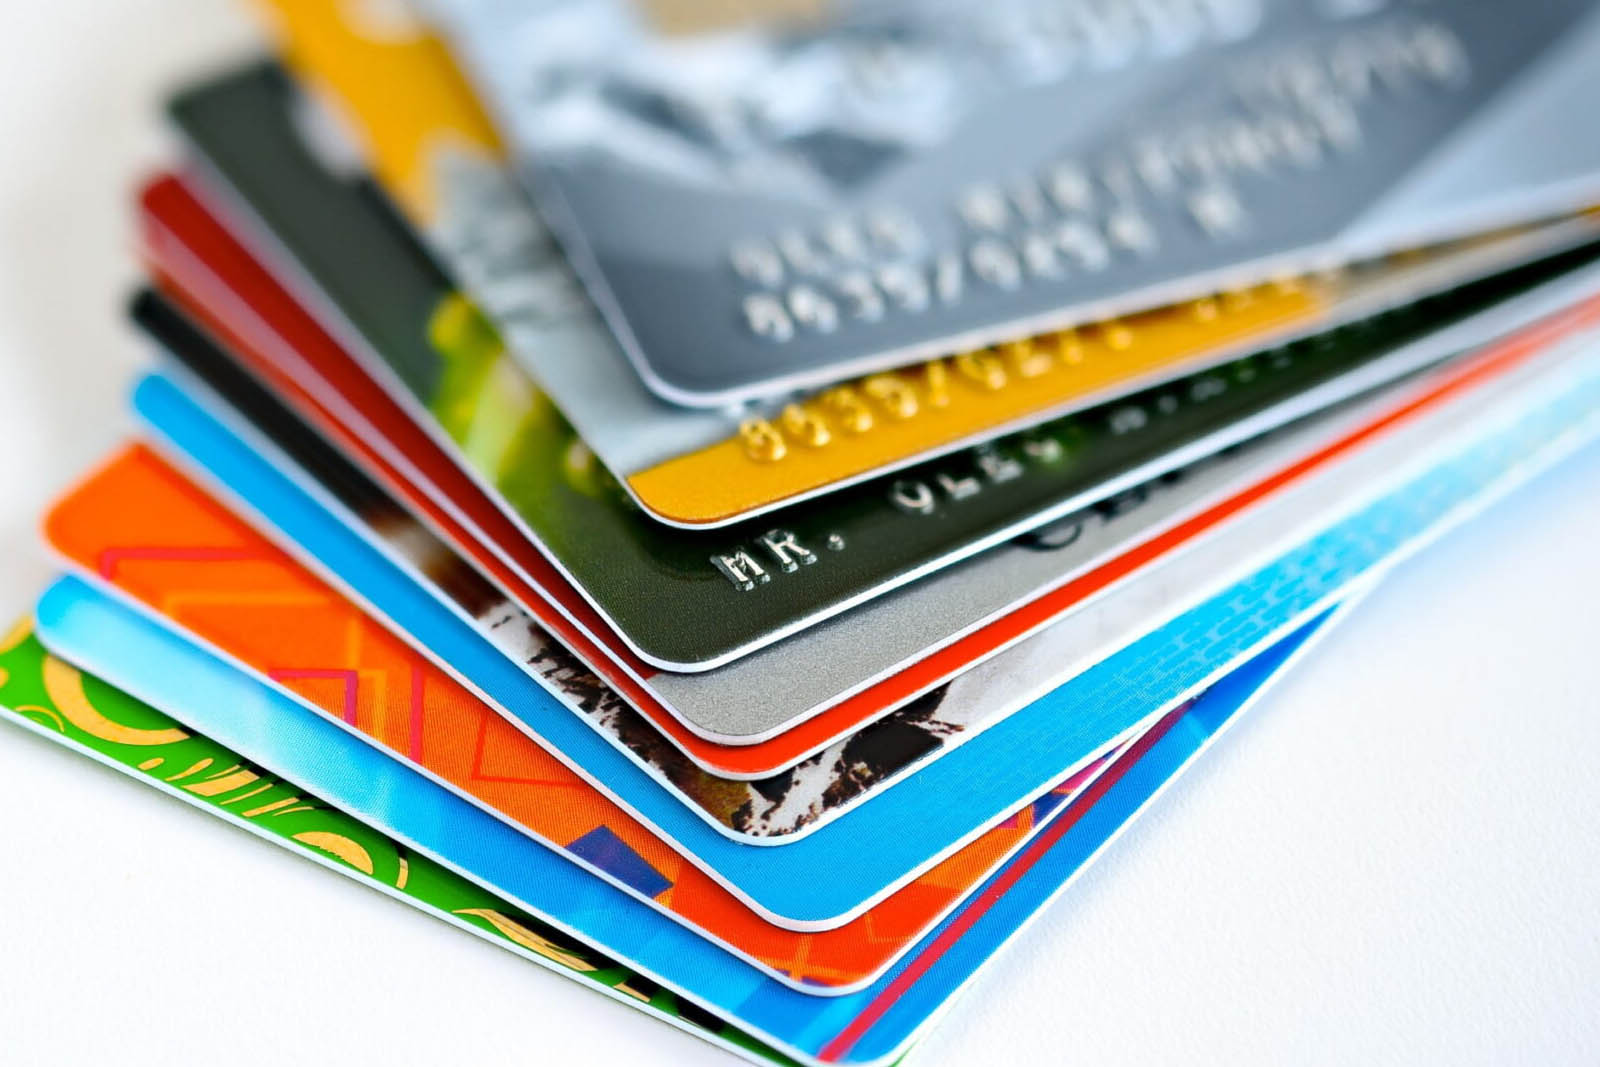 A picture of credit cards in a fan